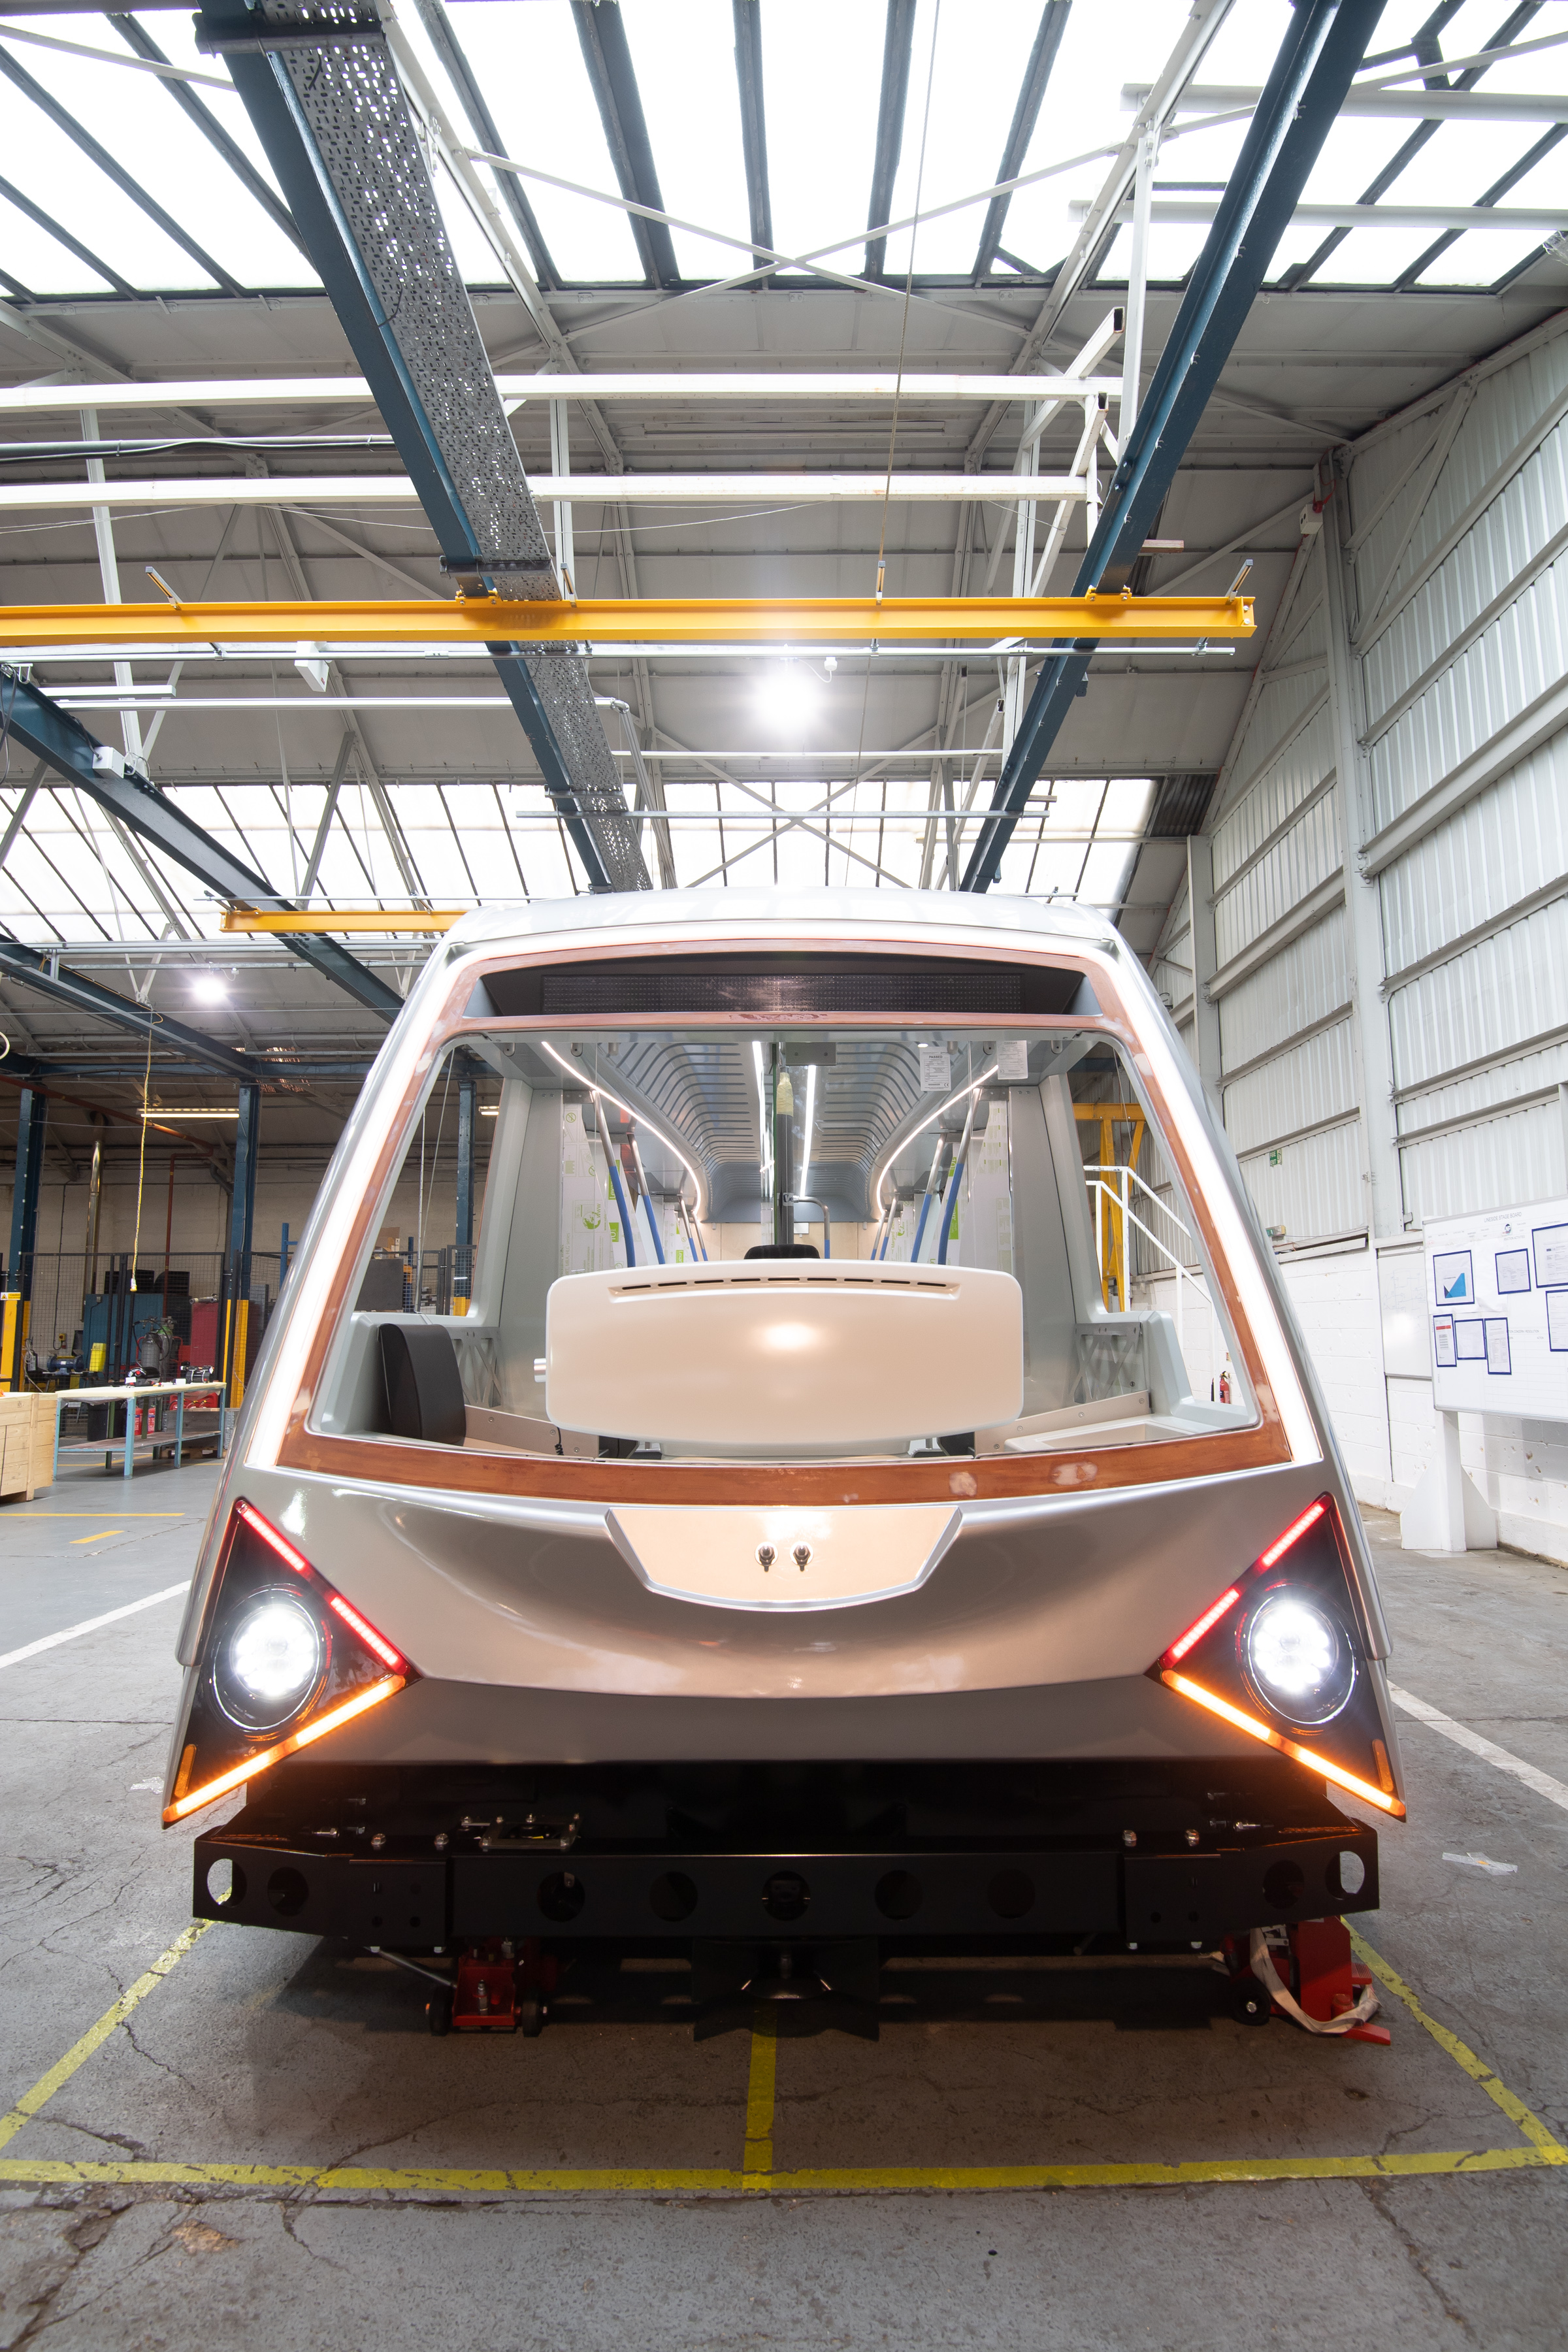 Newswise: Early construction of prototype innovative light rail vehicle for the City of Coventry